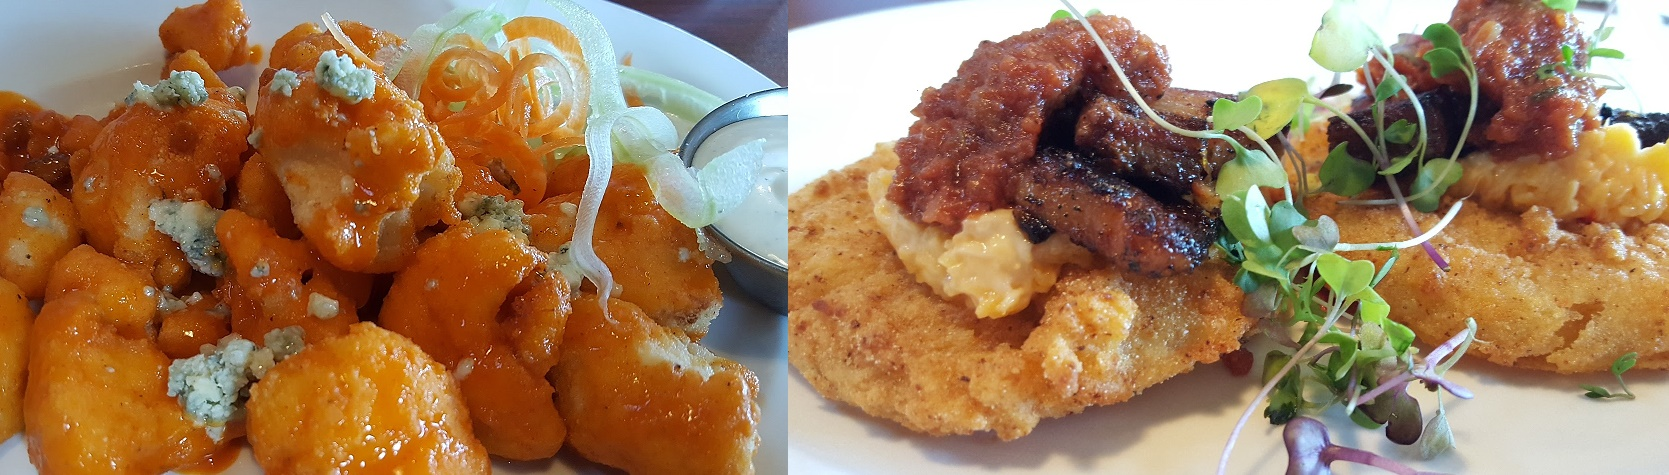 Buffalo Cauliflower and Fried Green Tomatoes at The Grill at Iron City